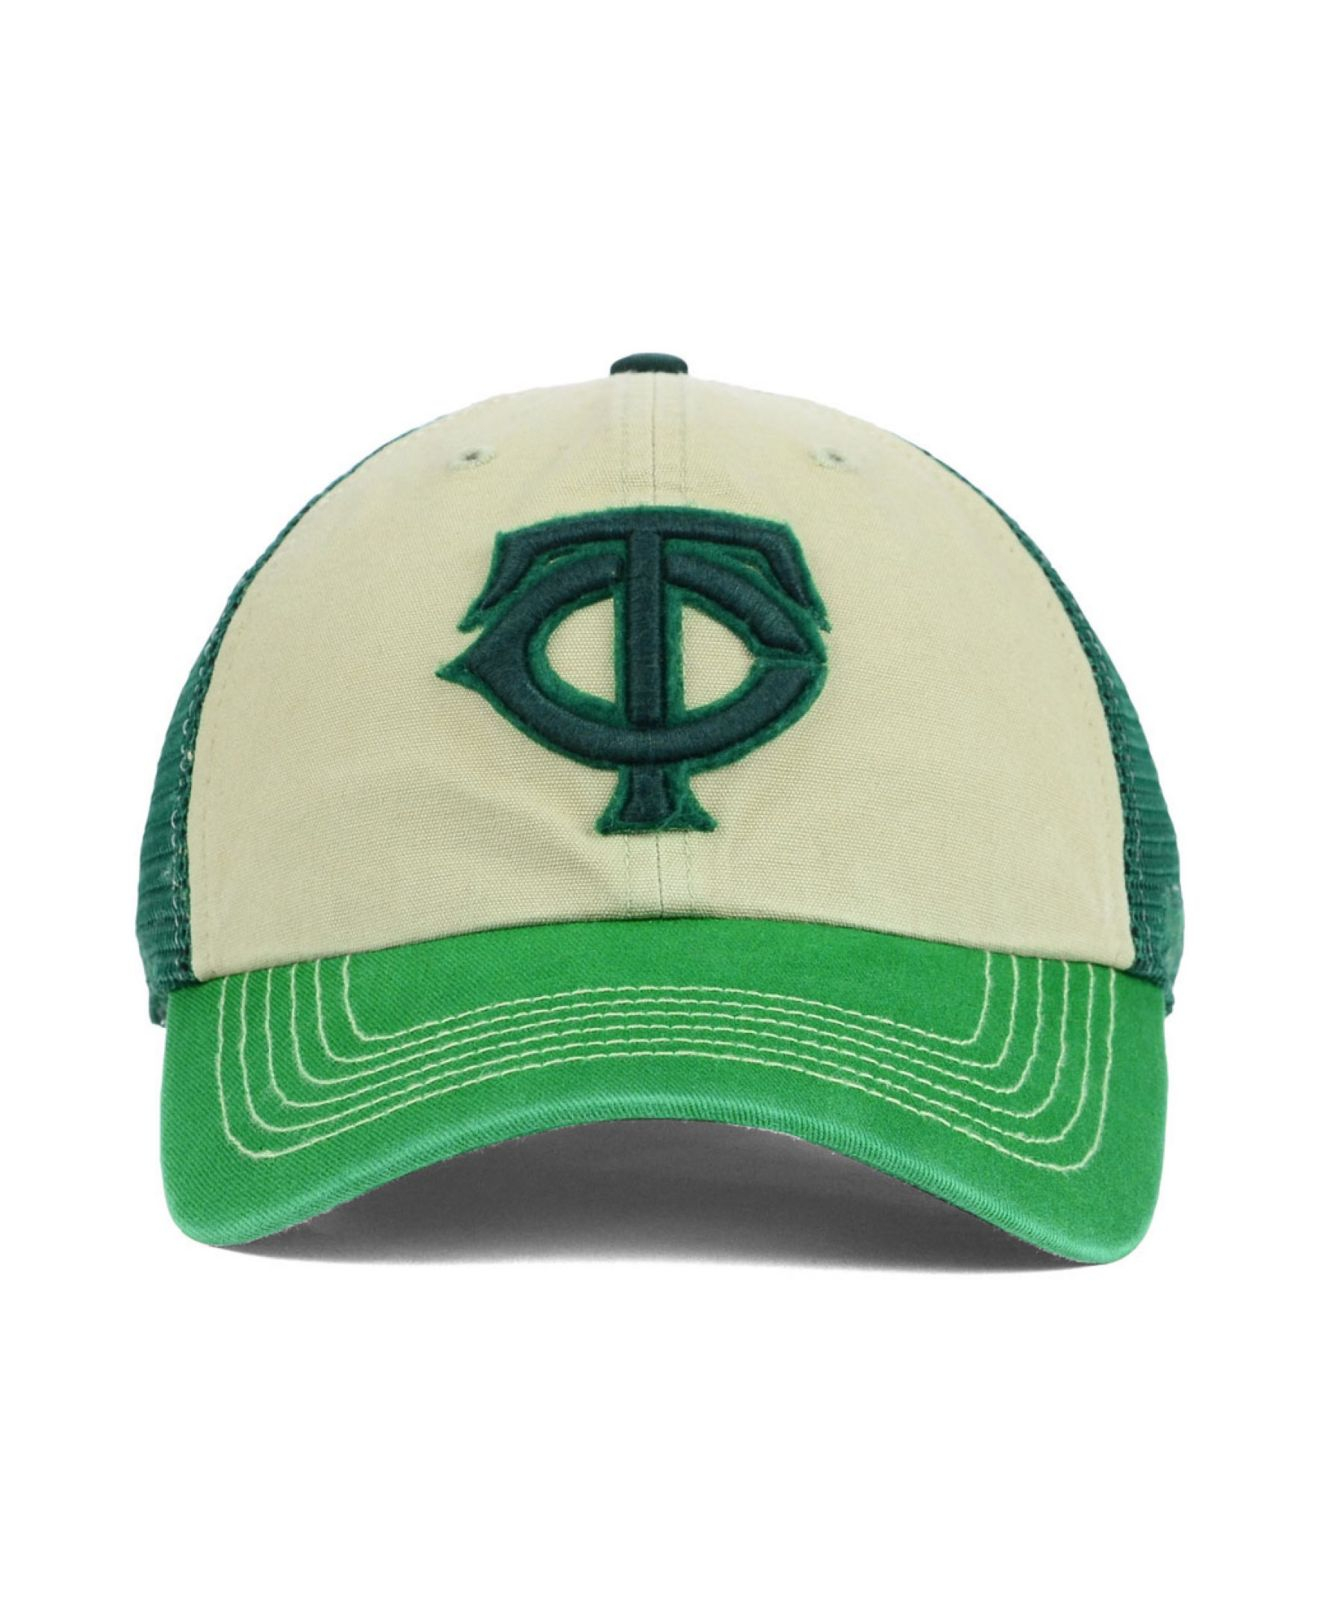 sale retailer 6cb36 dd36c ... wholesale lyst 47 brand minnesota twins mcnally clean up cap in green  for men e7973 0e4dc